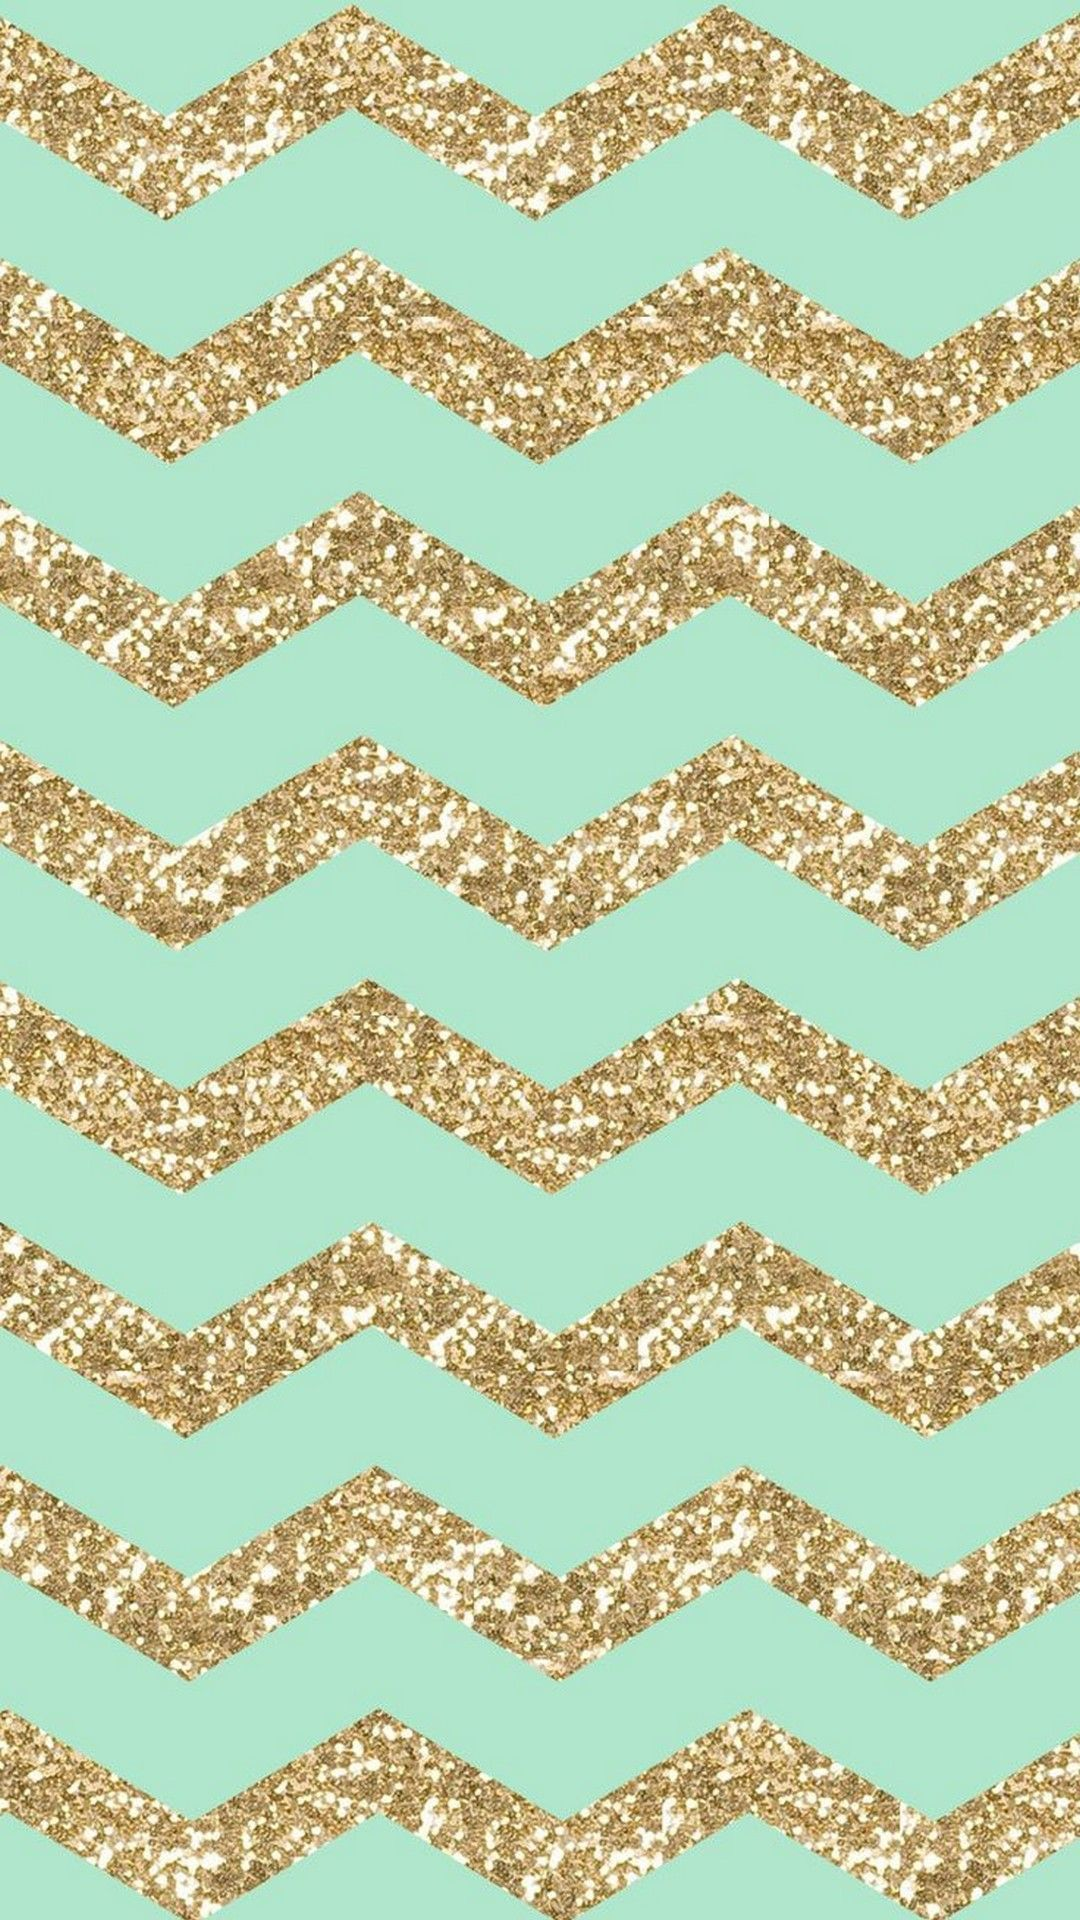 40 Gold Girly Wallpapers Download At Wallpaperbro Iphone Wallpaper Girly Gold Girly Wallpaper Cute Wallpapers For Ipad